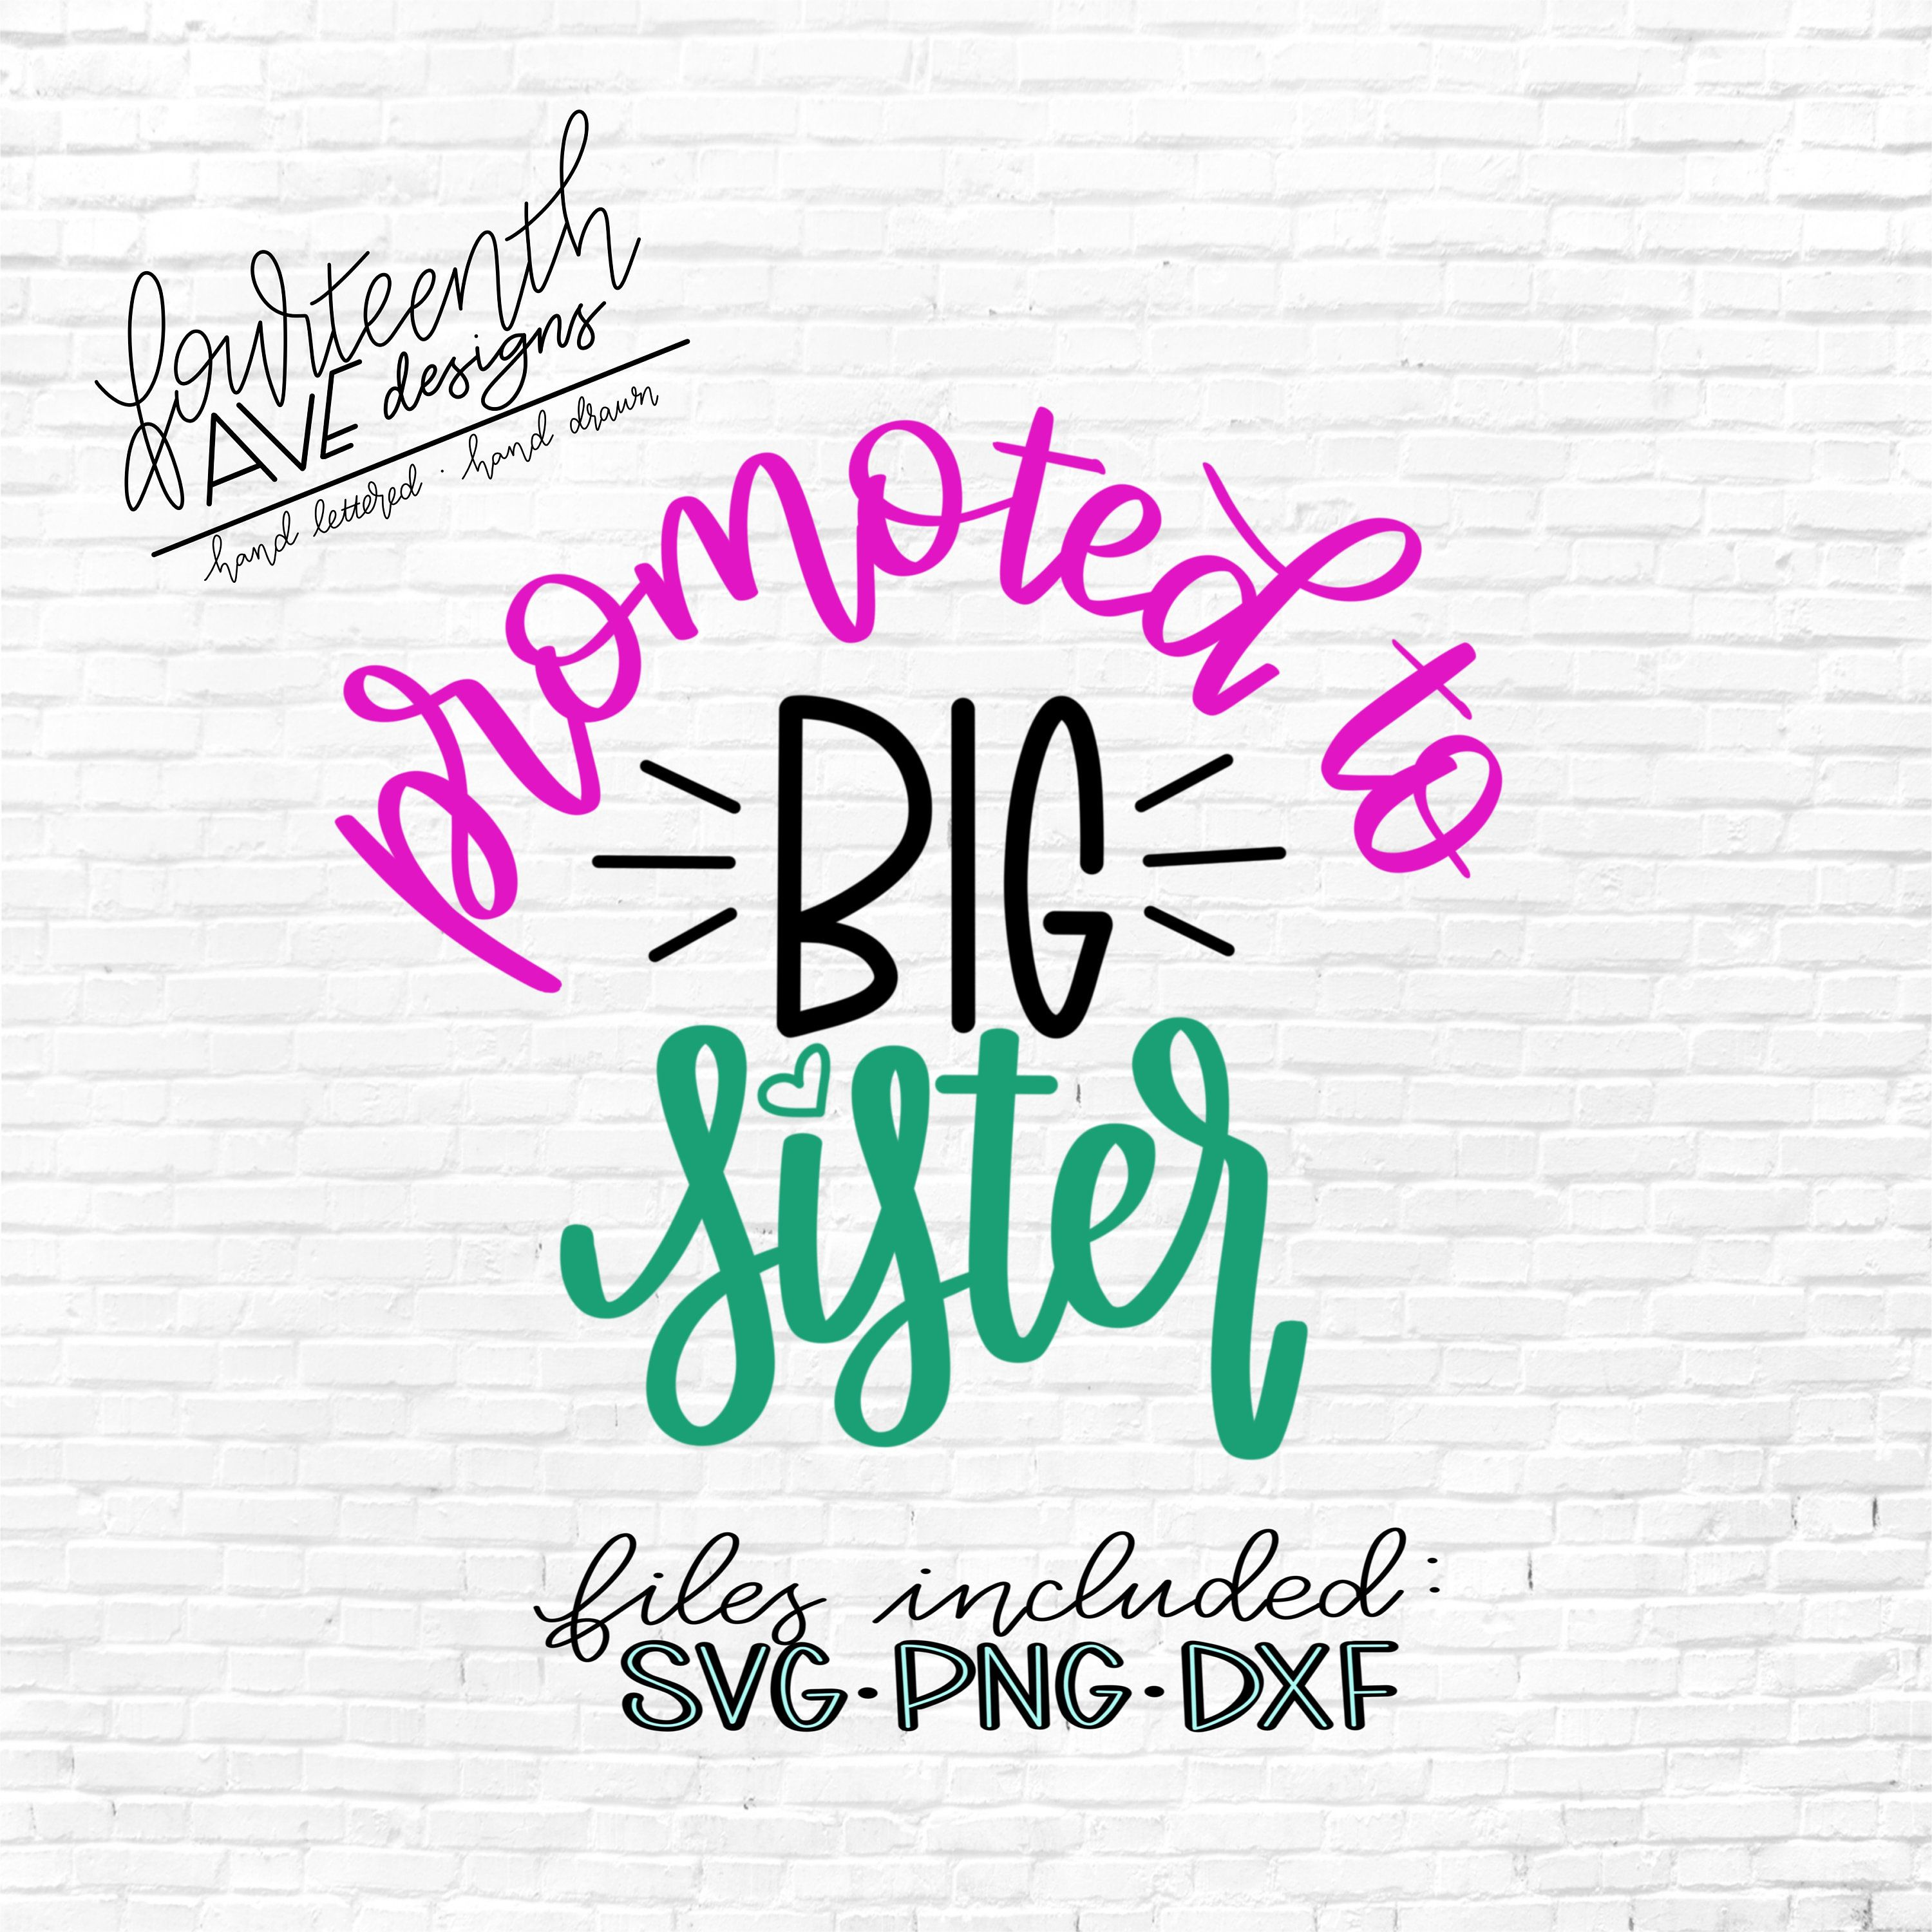 Download Big Sister Arrow – Svg, Png, Pdf Files – Hand Drawn Lettered Cut File – Graphic Overlay Crafter Files